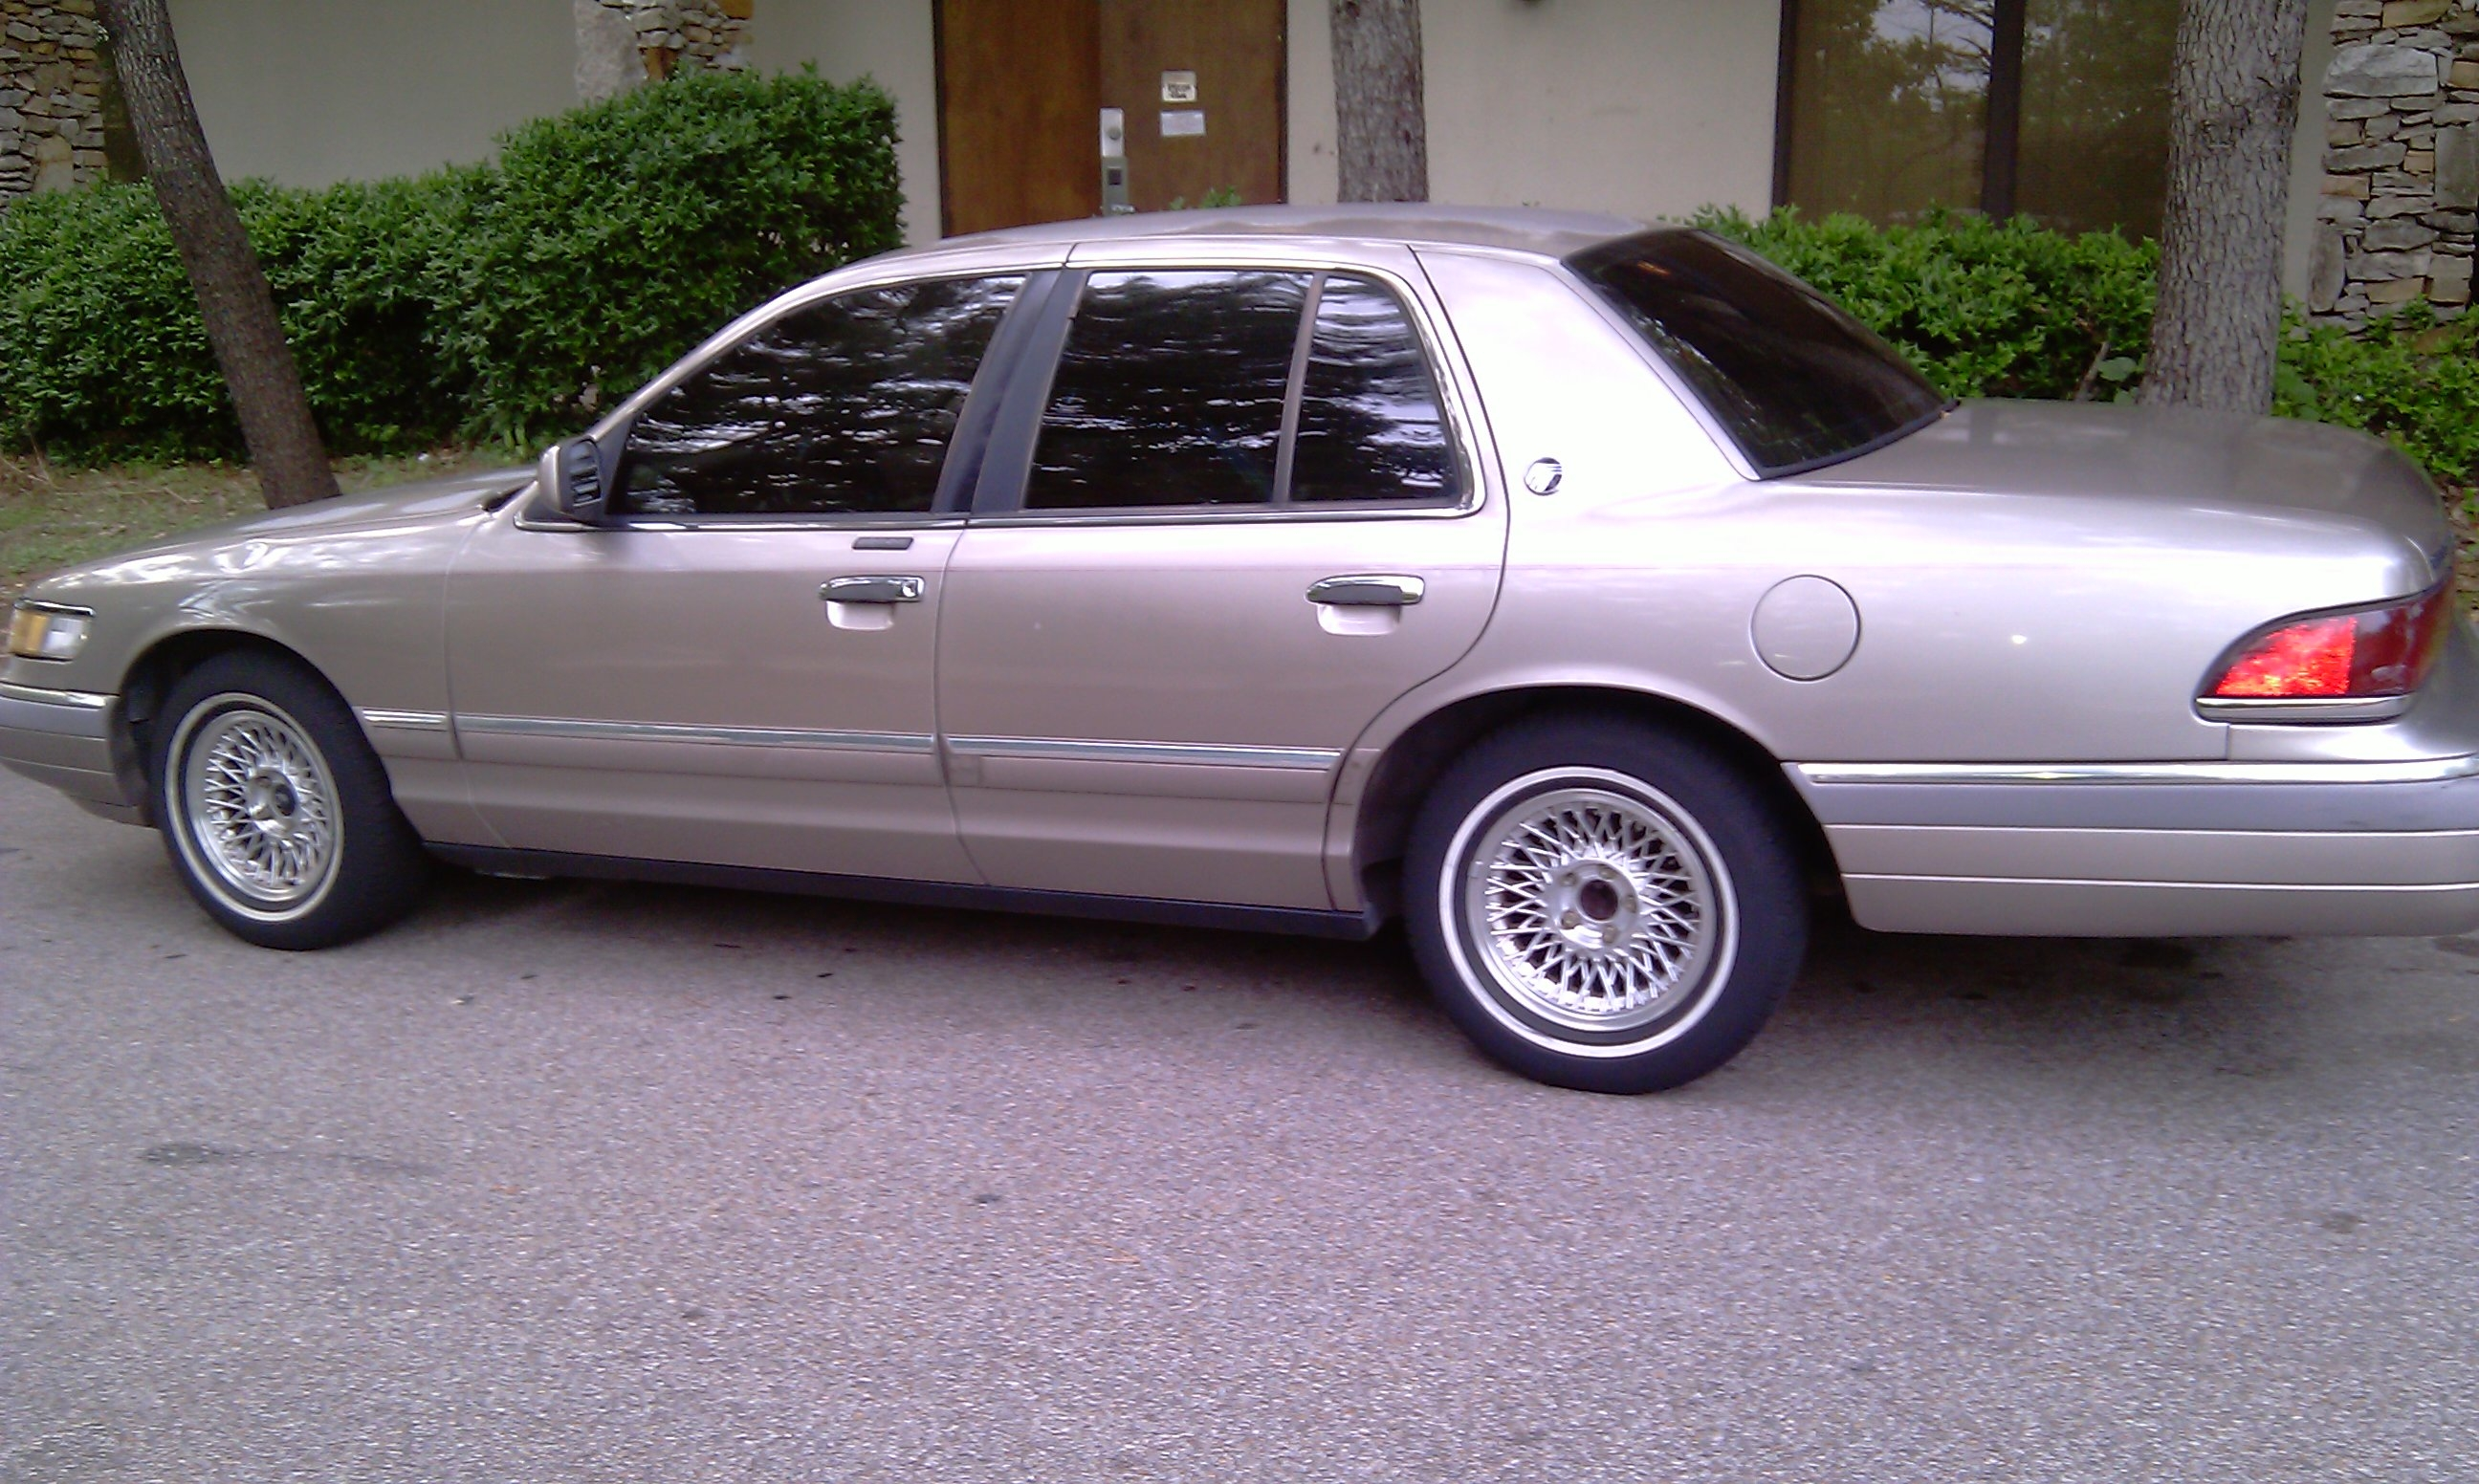 EastATLTrav's 1994 Mercury Grand Marquis